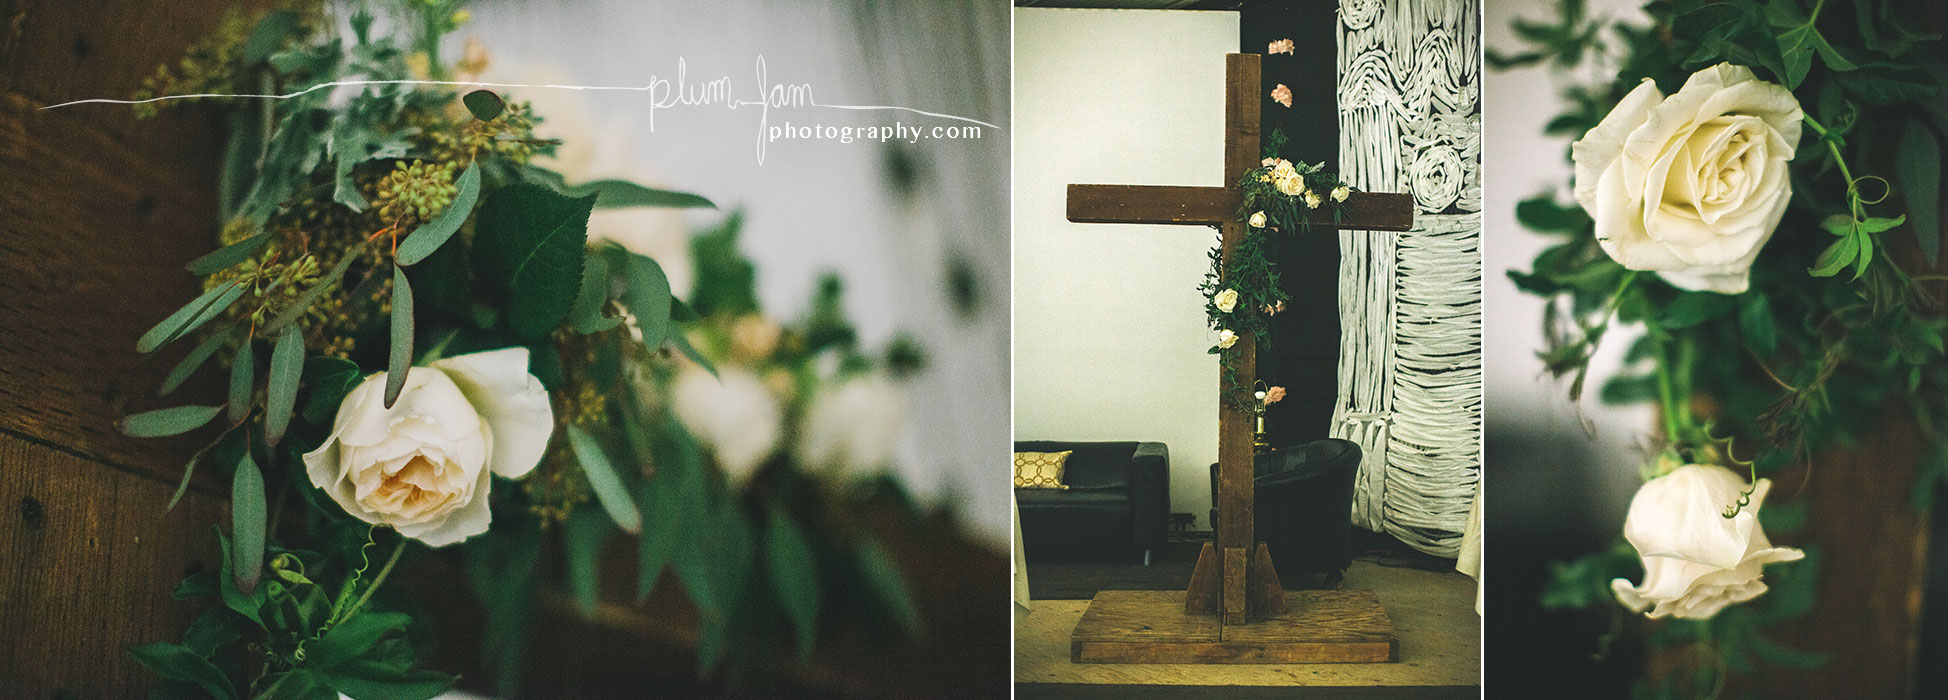 SusieRob-Pink-Gold-Church-034-PlumJamPhotography